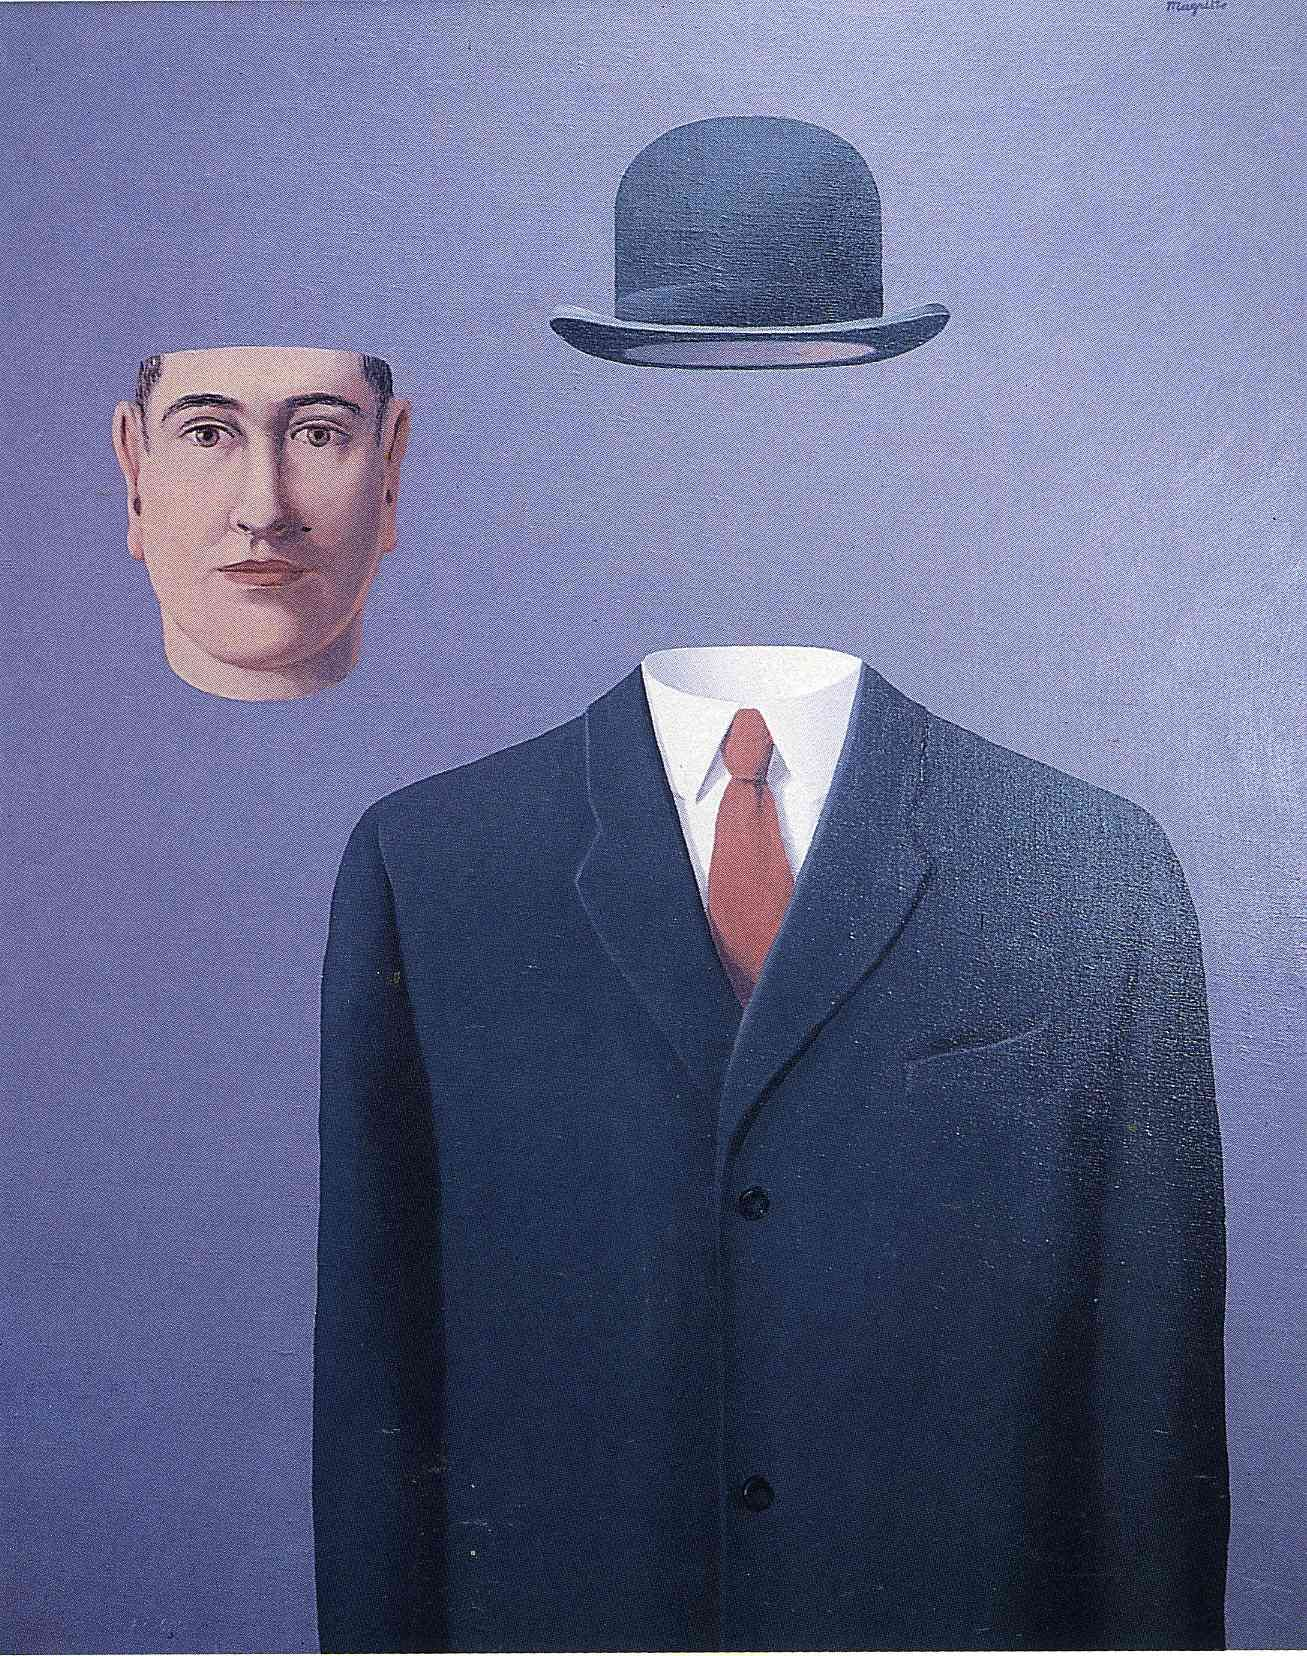 The Pilgrim - Rene Magritte - WikiPaintings. www.wikipaintings.org ...